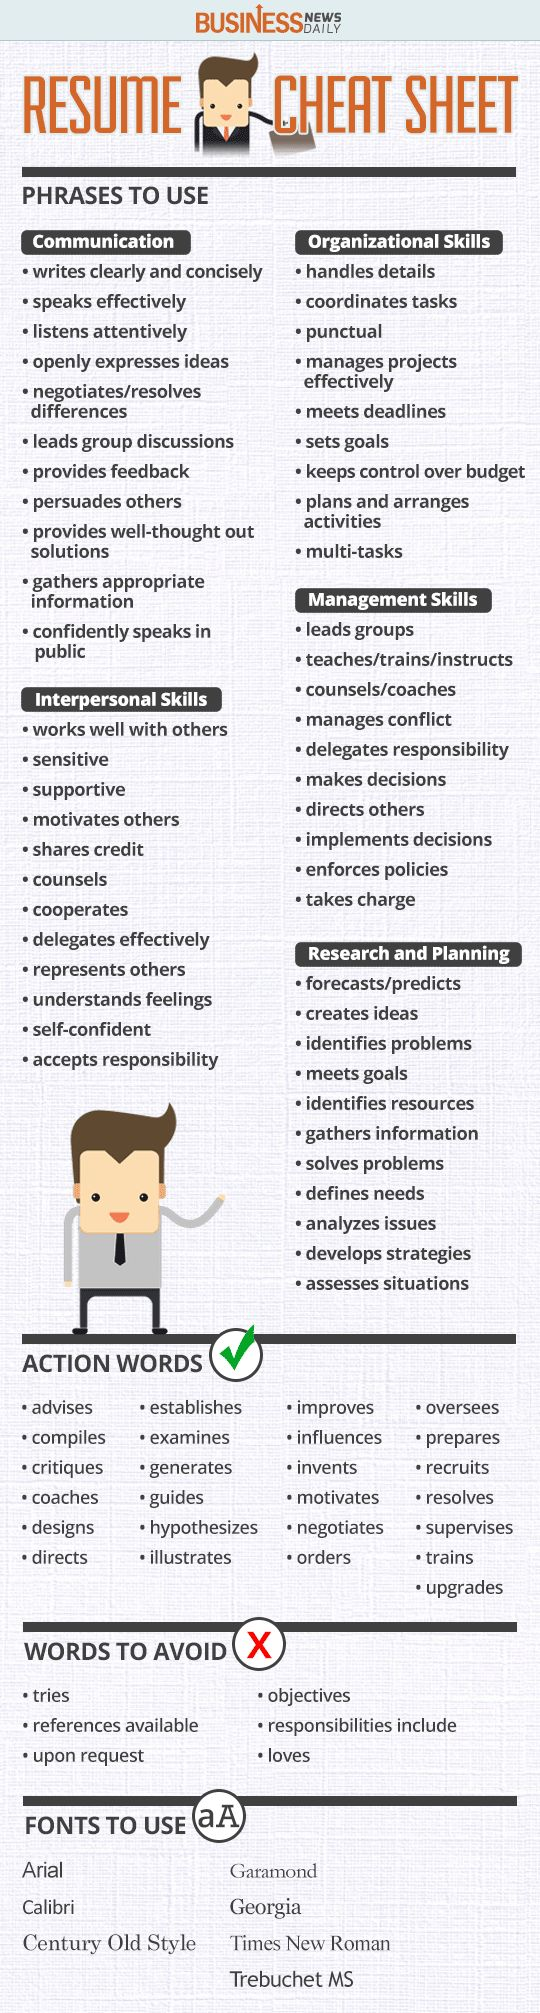 Opposenewapstandardsus  Scenic  Ideas About Resume On Pinterest  Cv Format Resume  With Fascinating Resume Cheat Sheet Infographic Andrews Almost Done With A Complete Unit On Employment Which With Extraordinary Resume For Medical School Also Effective Resume Writing In Addition Resume For College Freshmen And Example Nursing Resume As Well As Optimal Resume Brown Mackie Additionally Can Resumes Be  Pages From Pinterestcom With Opposenewapstandardsus  Fascinating  Ideas About Resume On Pinterest  Cv Format Resume  With Extraordinary Resume Cheat Sheet Infographic Andrews Almost Done With A Complete Unit On Employment Which And Scenic Resume For Medical School Also Effective Resume Writing In Addition Resume For College Freshmen From Pinterestcom